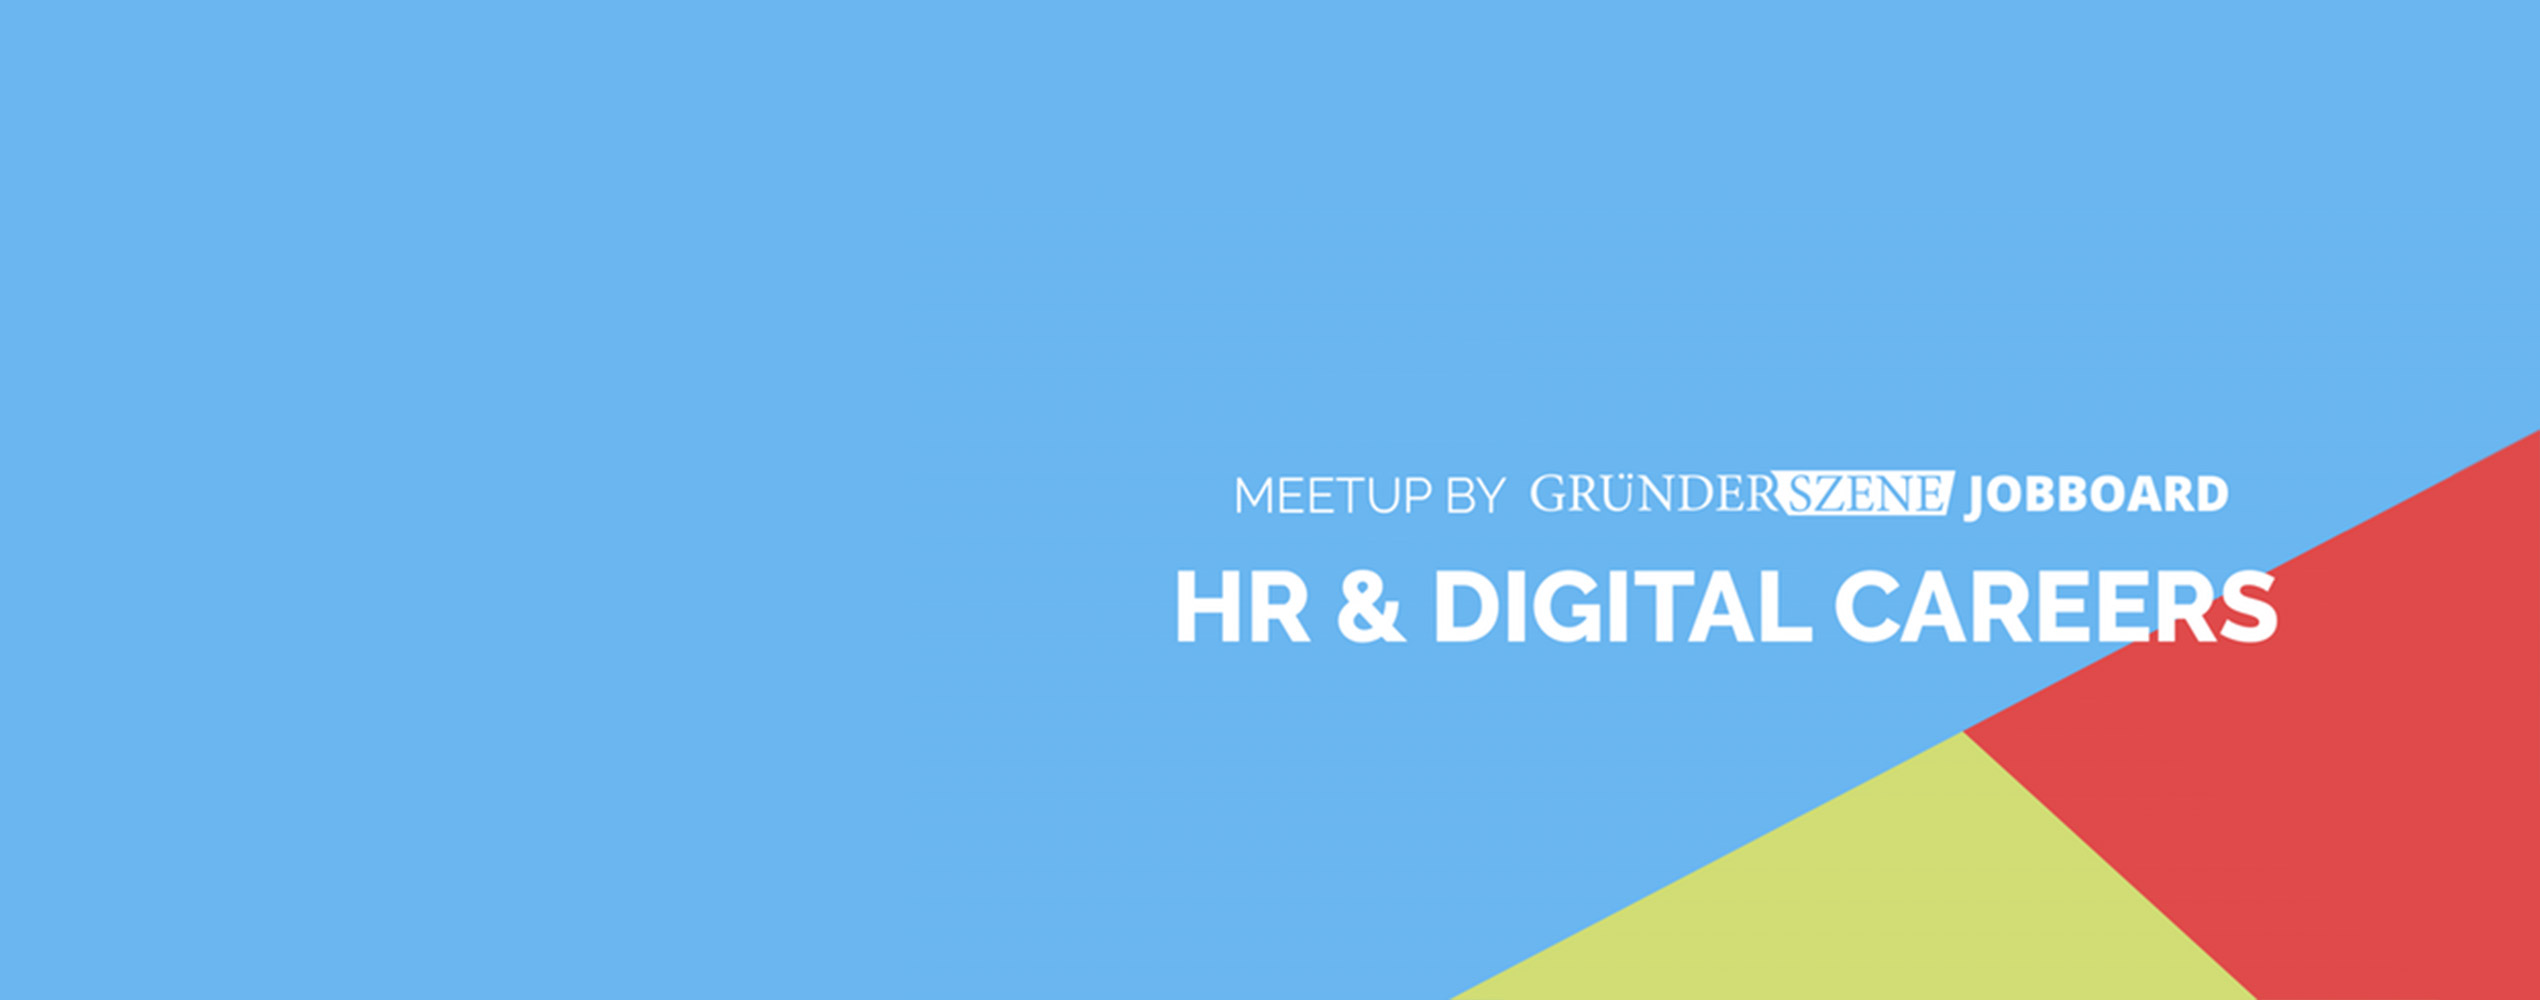 HEADER-Gruenderszene-digital-careers-meetup-2540x1000